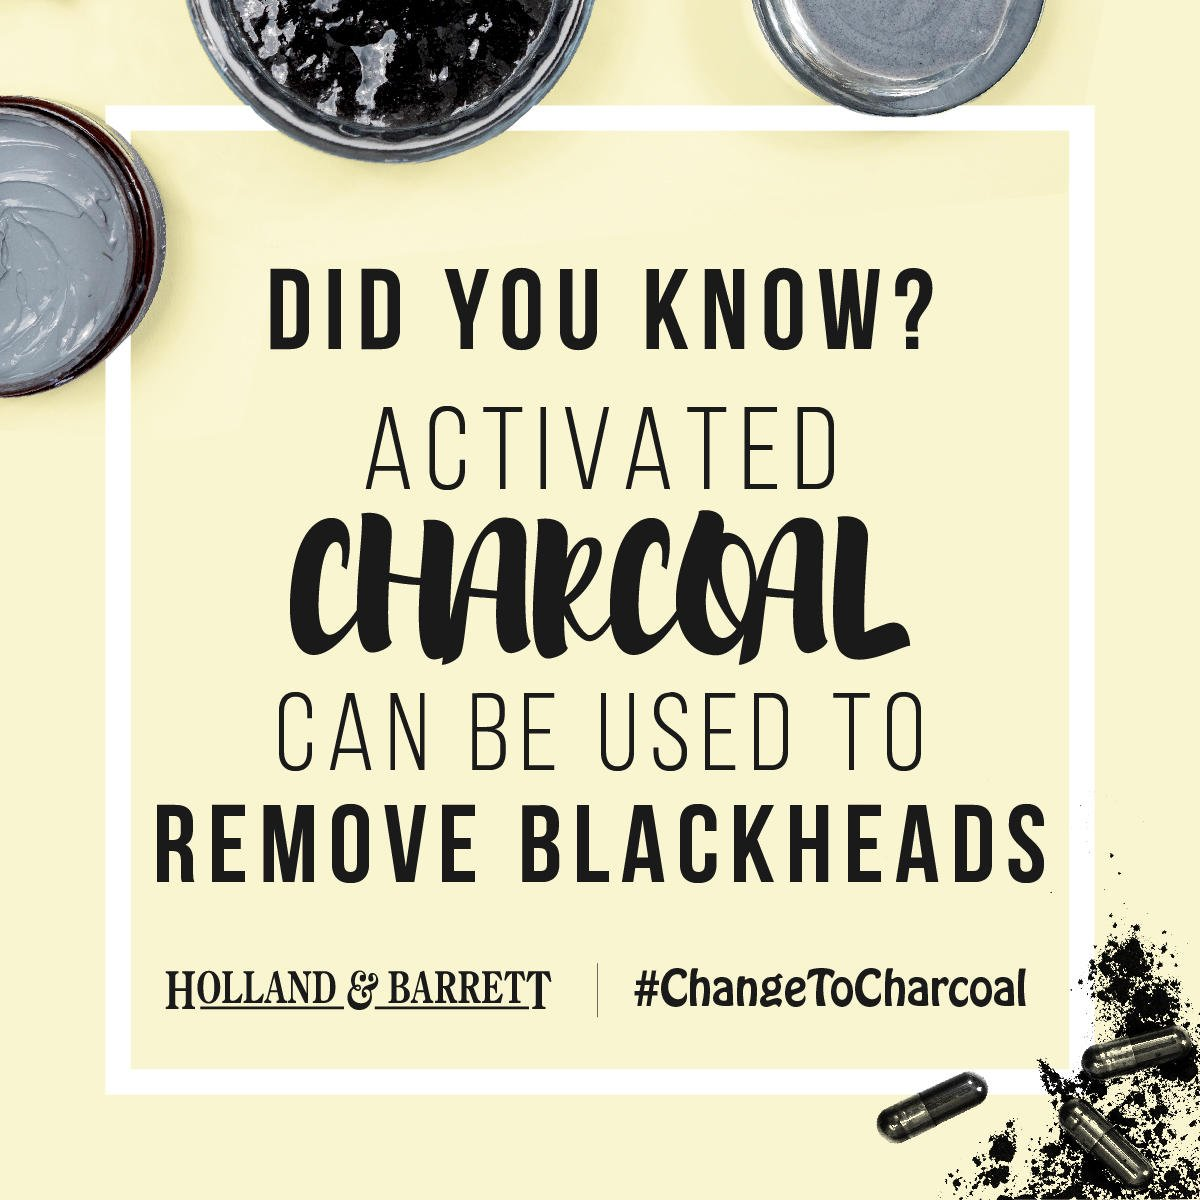 When your skin feels good, you feel great. Maybe it's time for you to make the #ChangeToCharcoal. https://t.co/TEhrH97aeQ